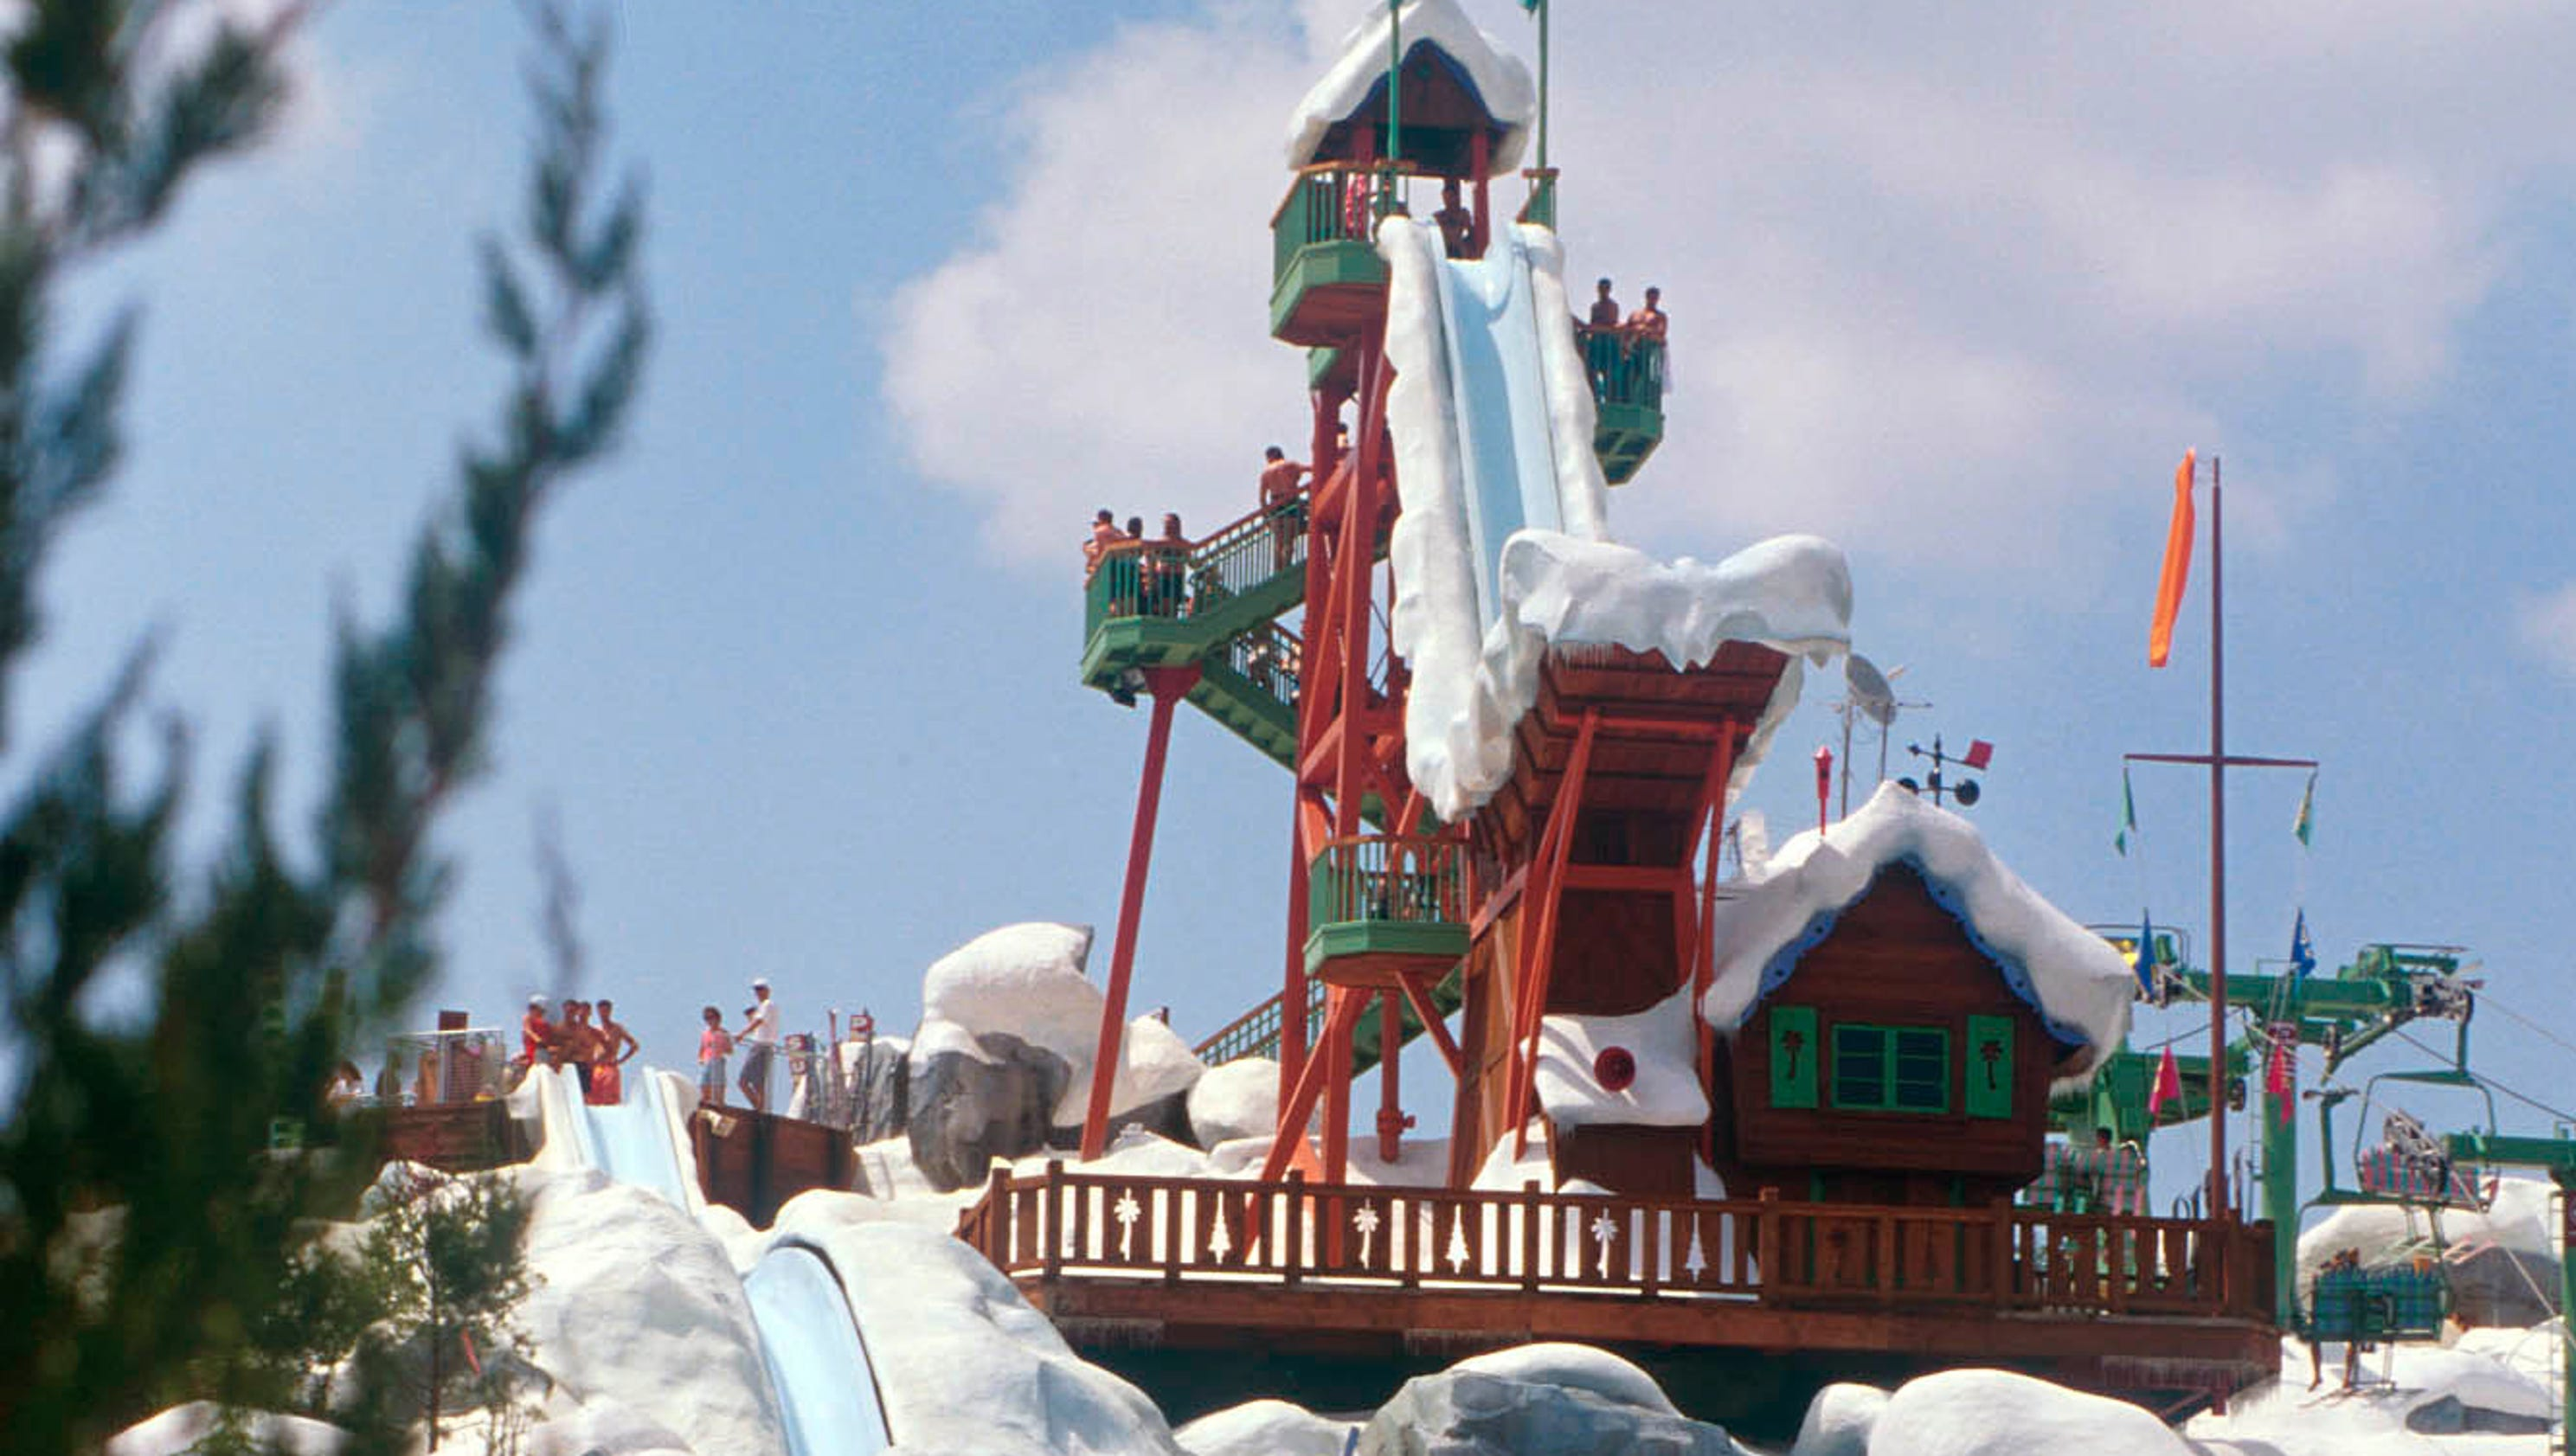 Weather At Blizzard Beach Today